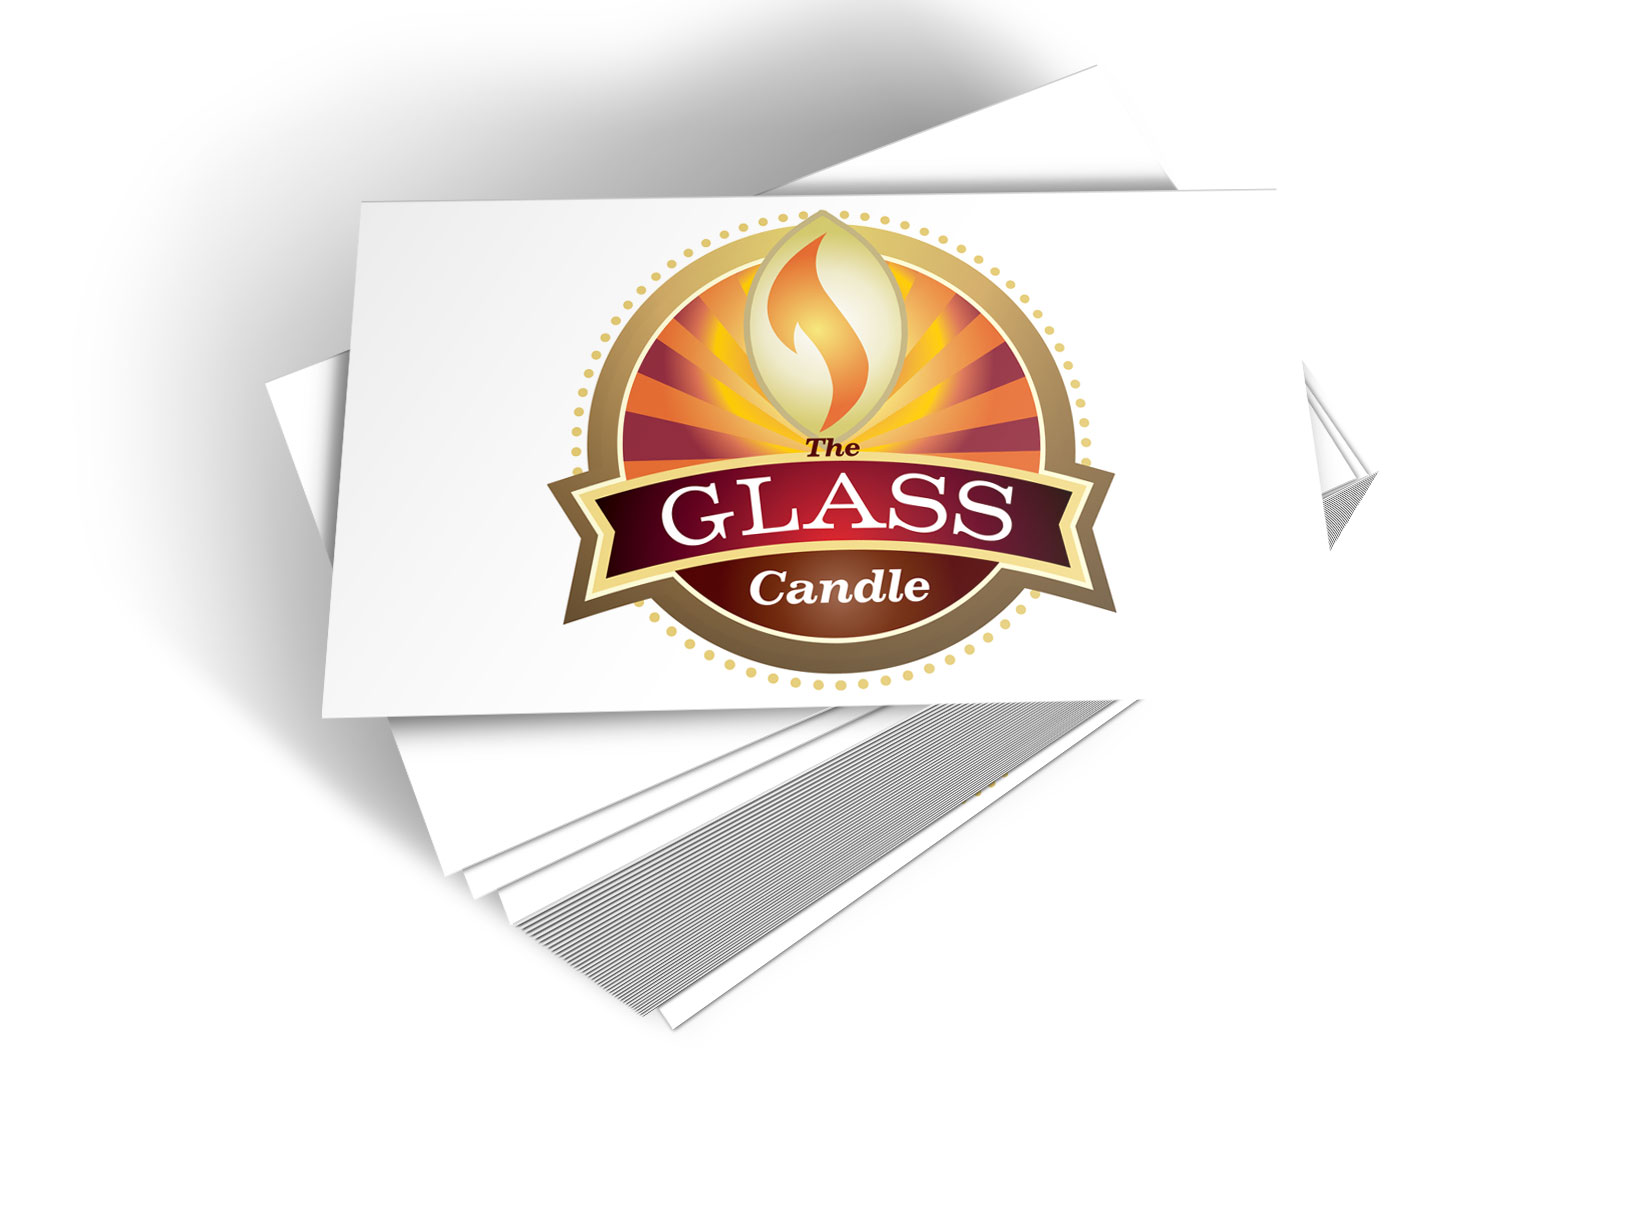 The Glass Candle – Branding